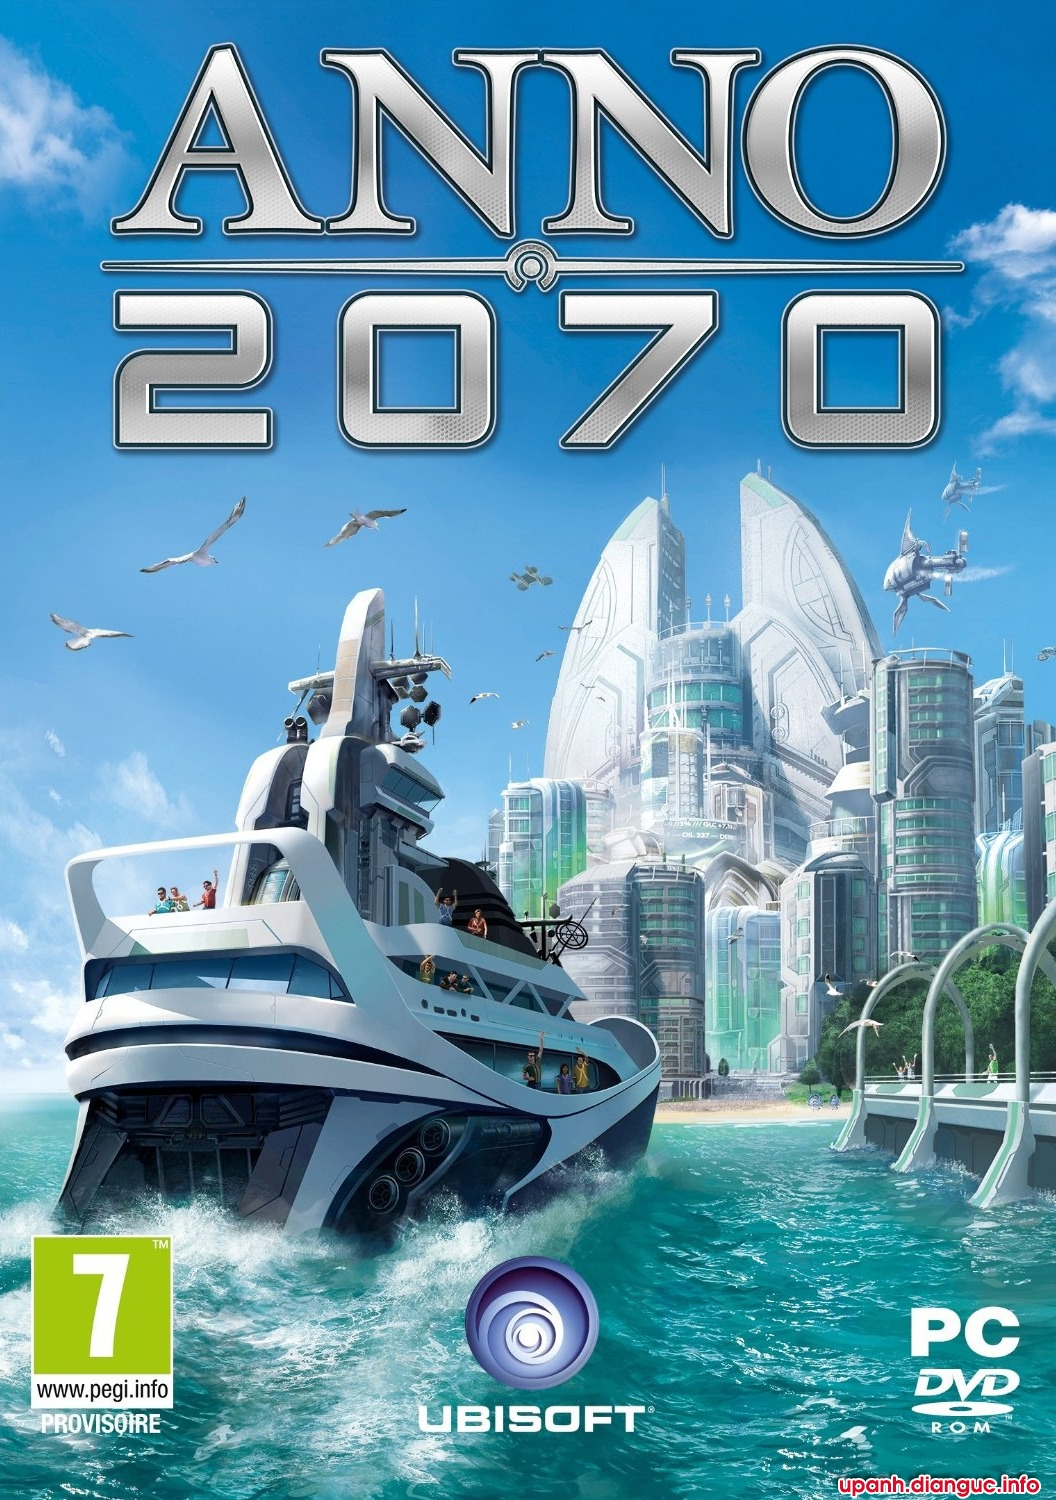 Download Game Anno 2070 Full crack Fshare